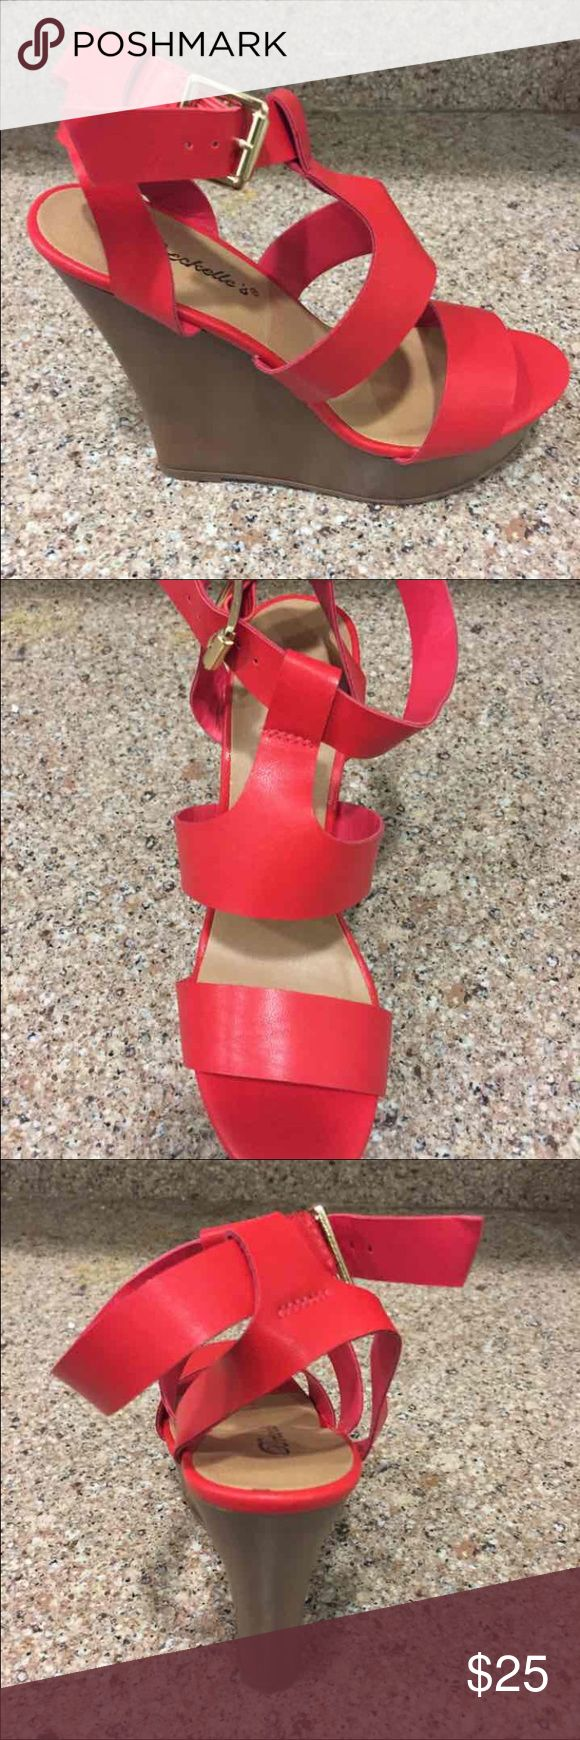 Brand New Cherry Red Wedge Heels Pumps Brand new, in box. Have sizes 5.5 and 7 available. Super cute cherry red wedges. Price is firm. Fast shipping from California. Shoes Wedges